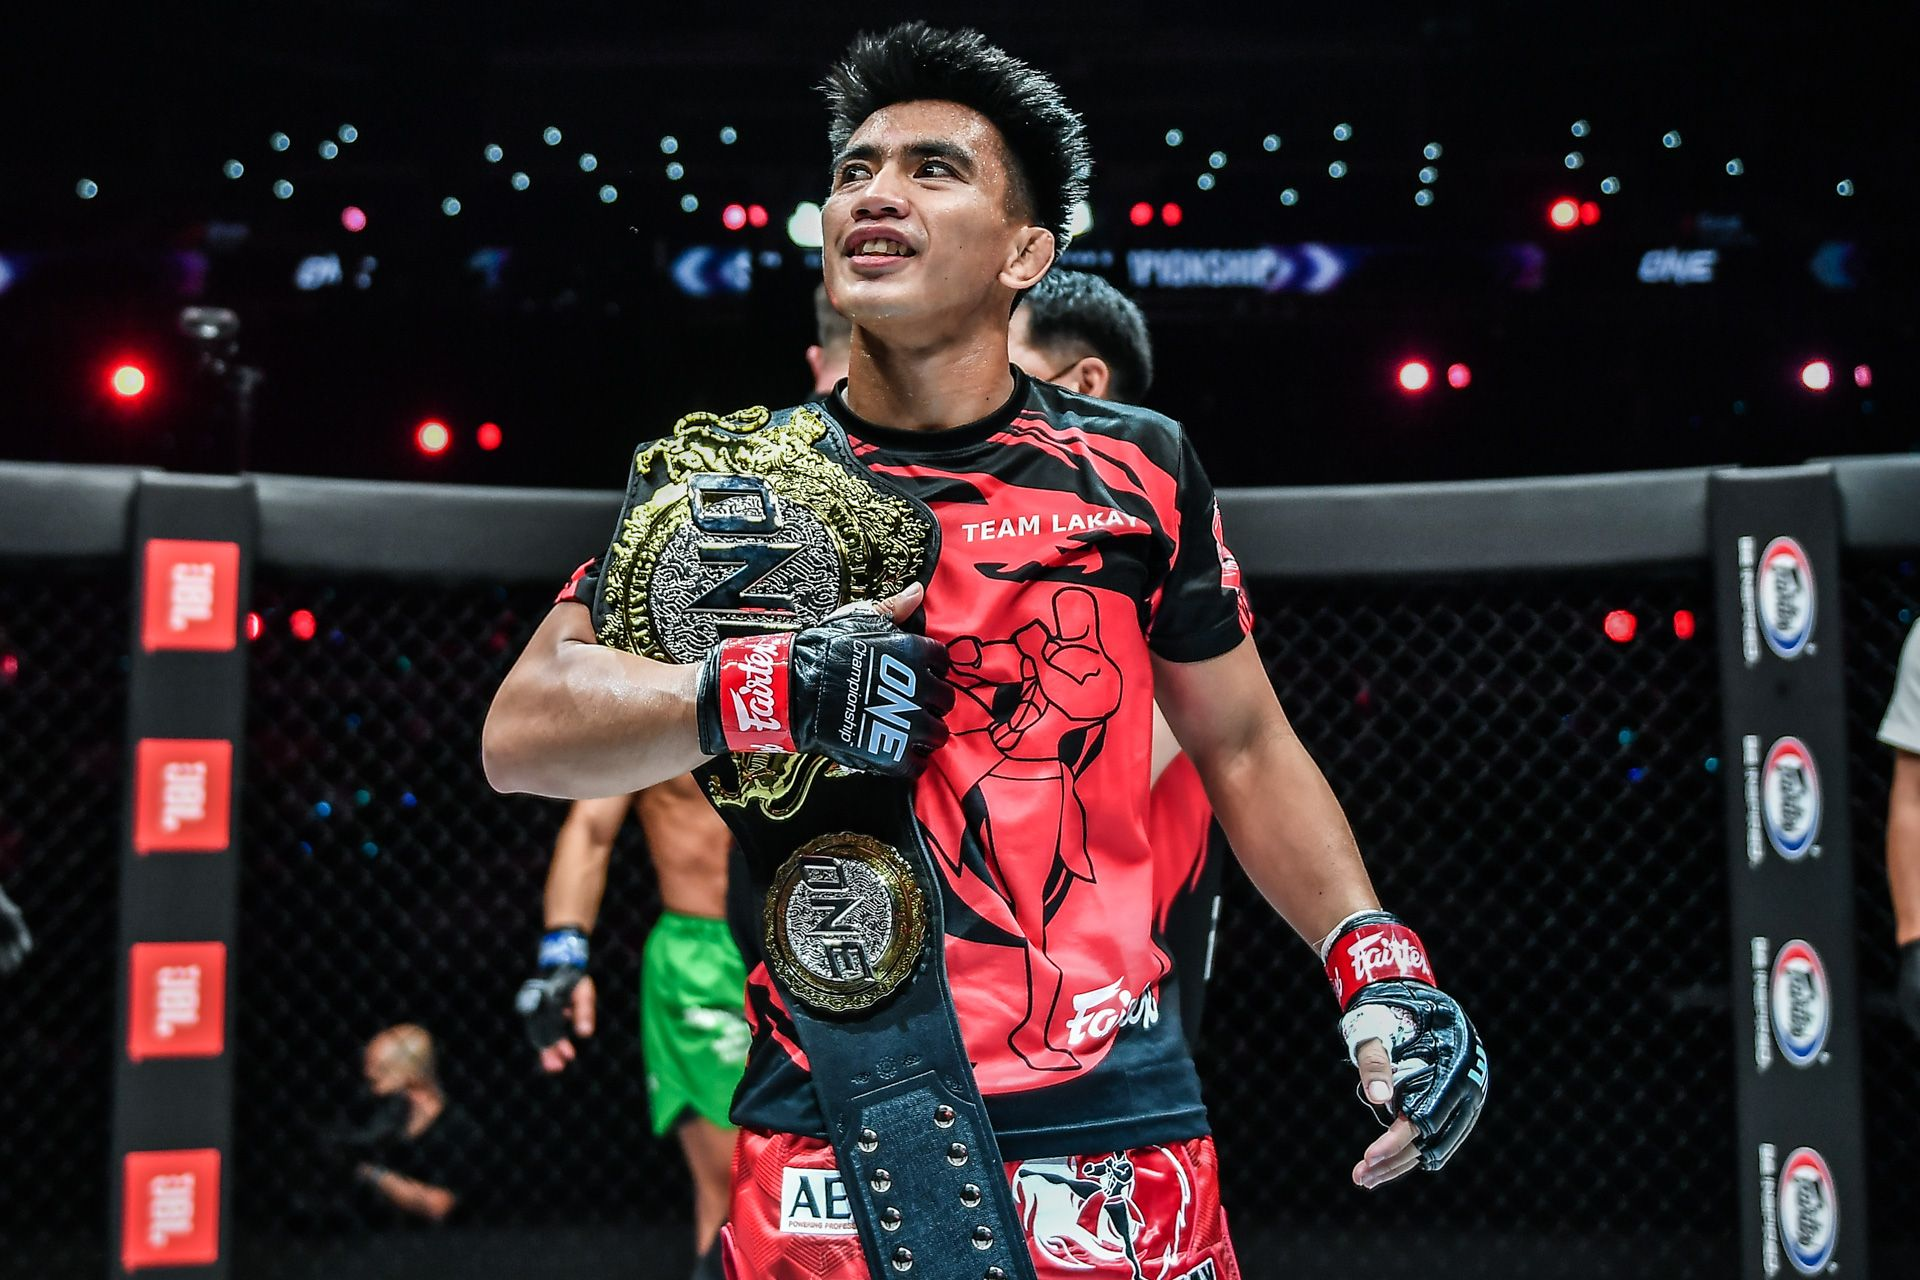 ONE-Empower-Joshua-Pacio Pacio says trilogy with Saruta made him a better fighter, person Mixed Martial Arts News ONE Championship  - philippine sports news